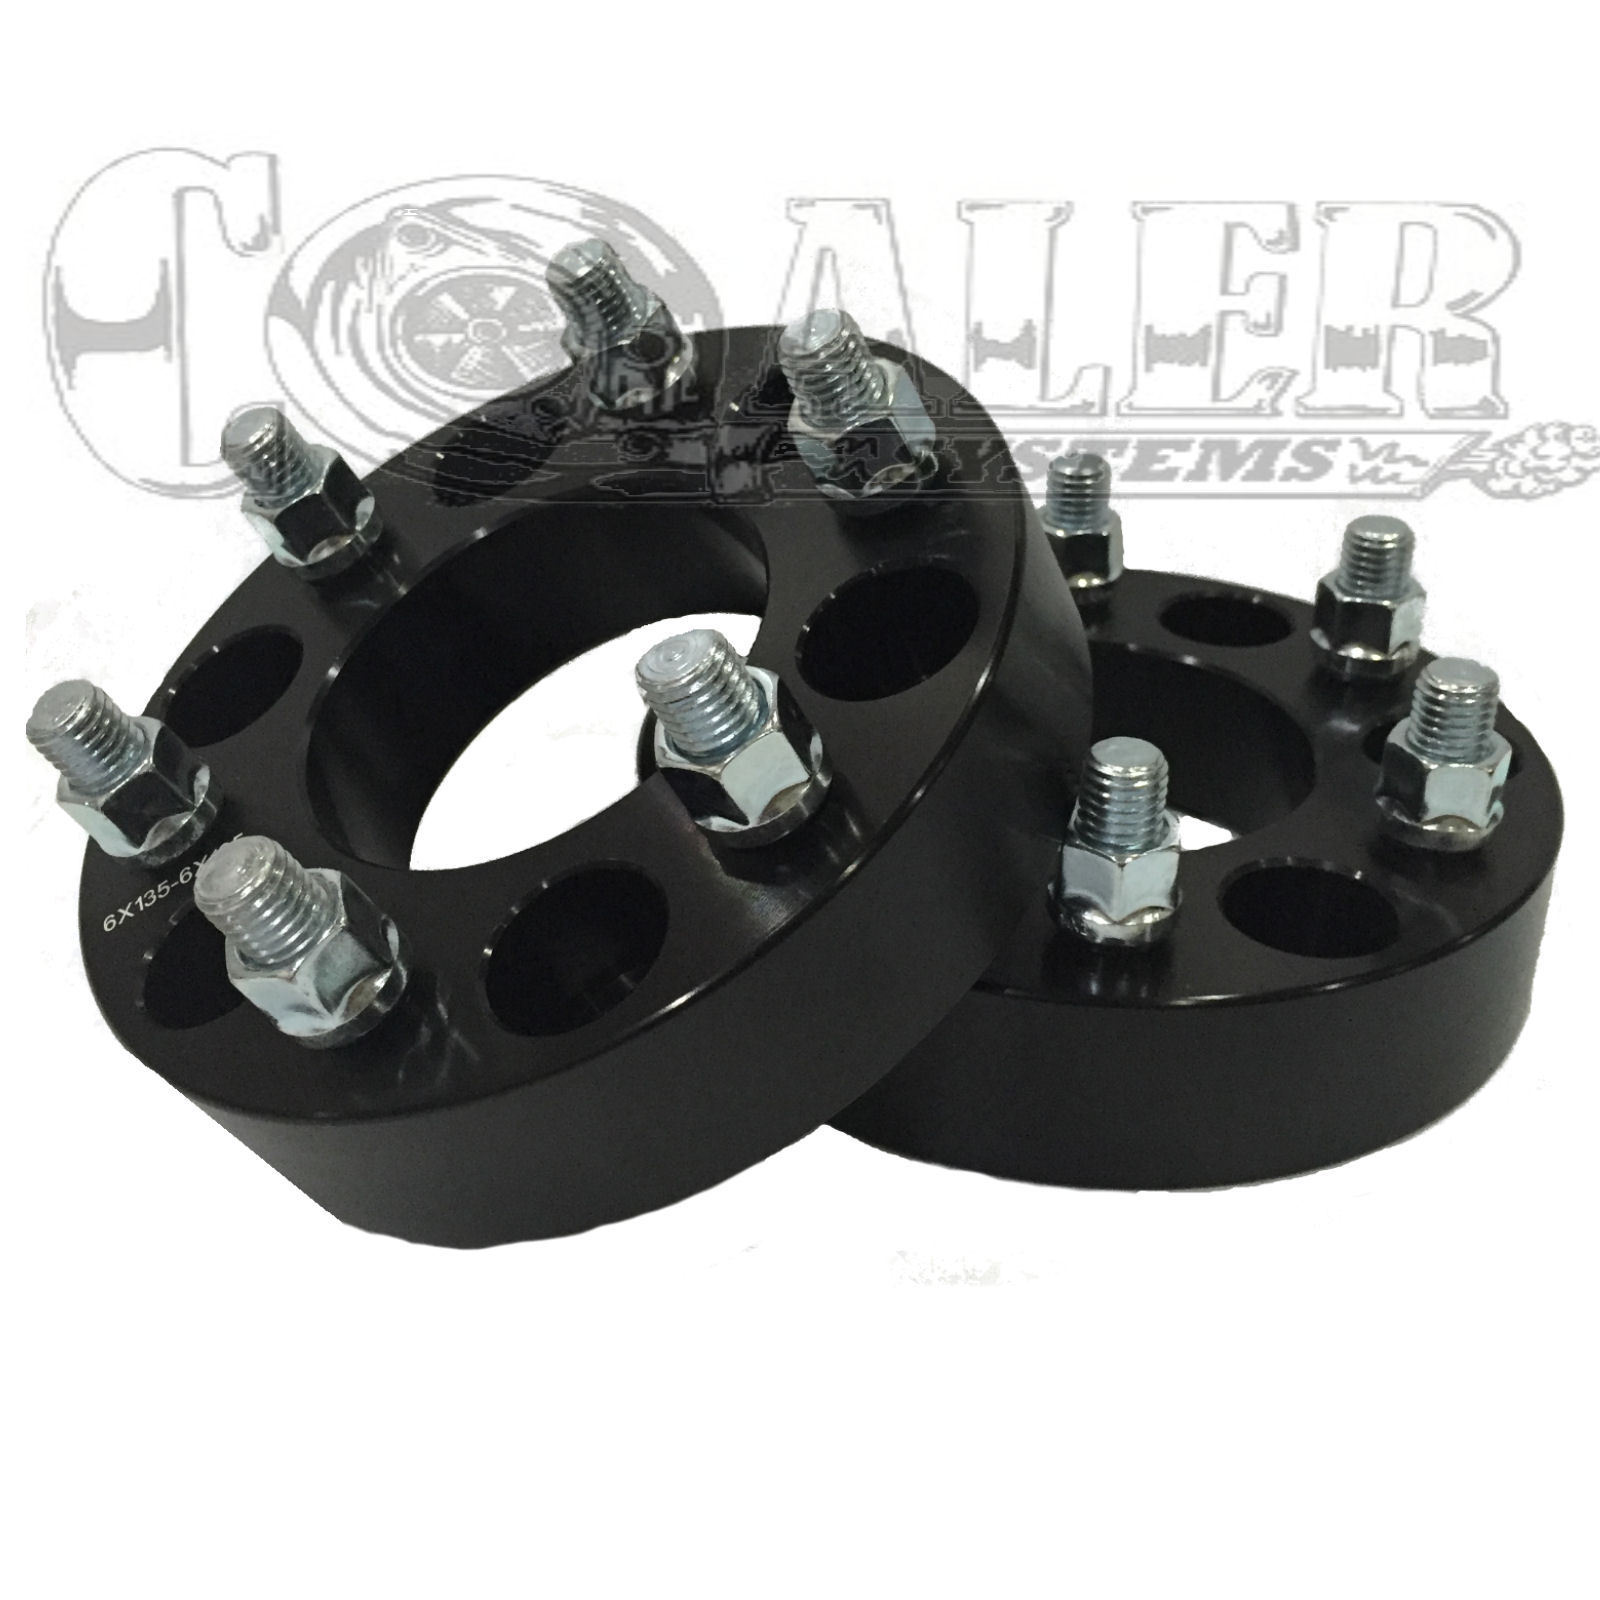 2 BLACK Wheel Spacers For Lincoln Navigator- 87.1 CB 6X135 1.5 in 38 mm 14x2.0